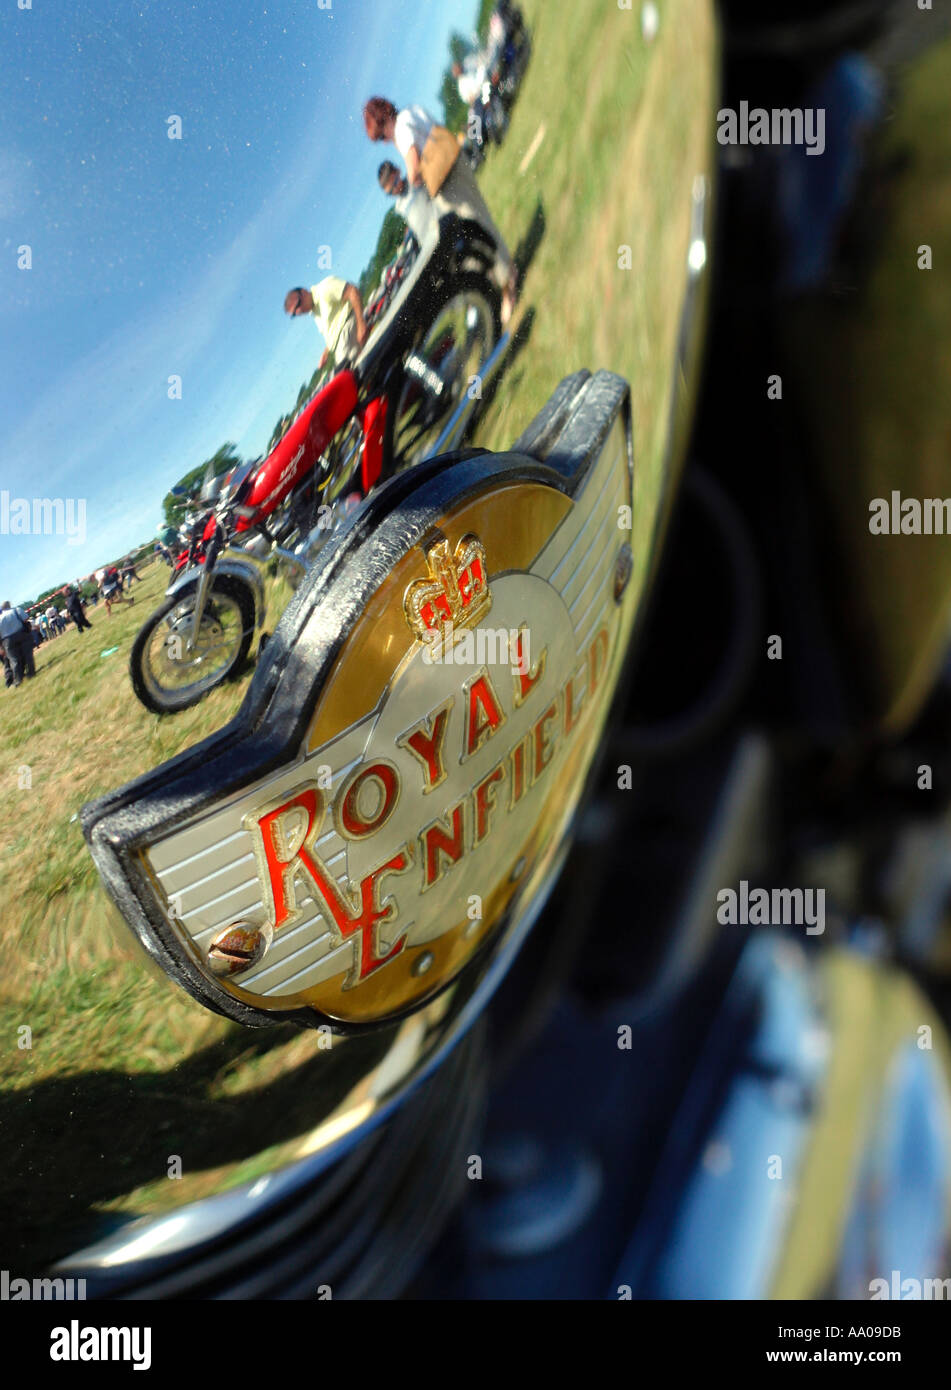 Royal Enfield badge, and reflections in a chrome petrol tank at a motorcycle rally in Redditch, Worcestershire Stock Photo